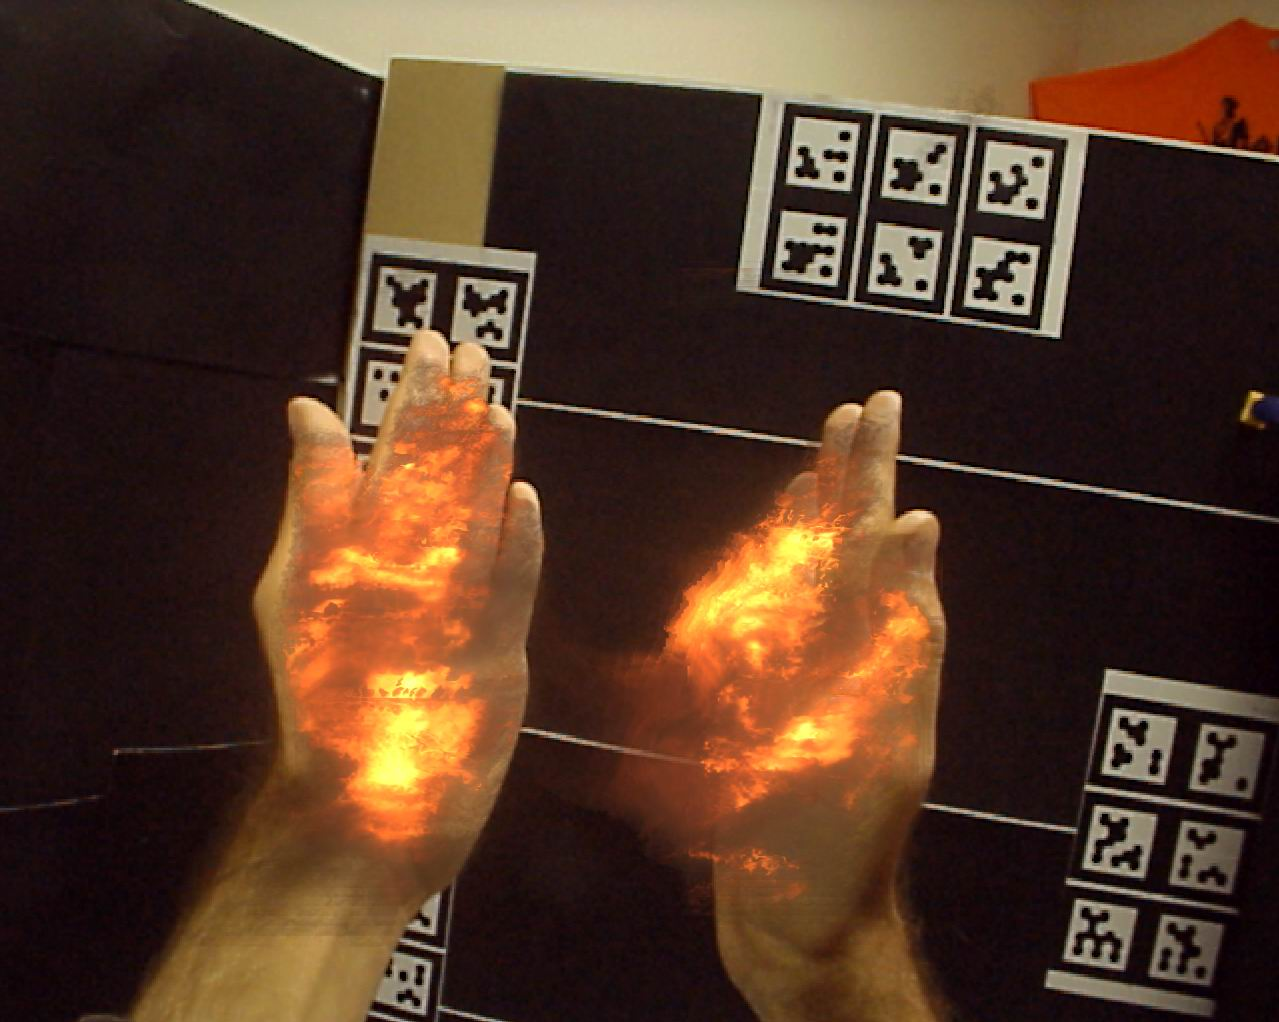 BurnAR: Involuntary Heat Sensations in Augmented Reality